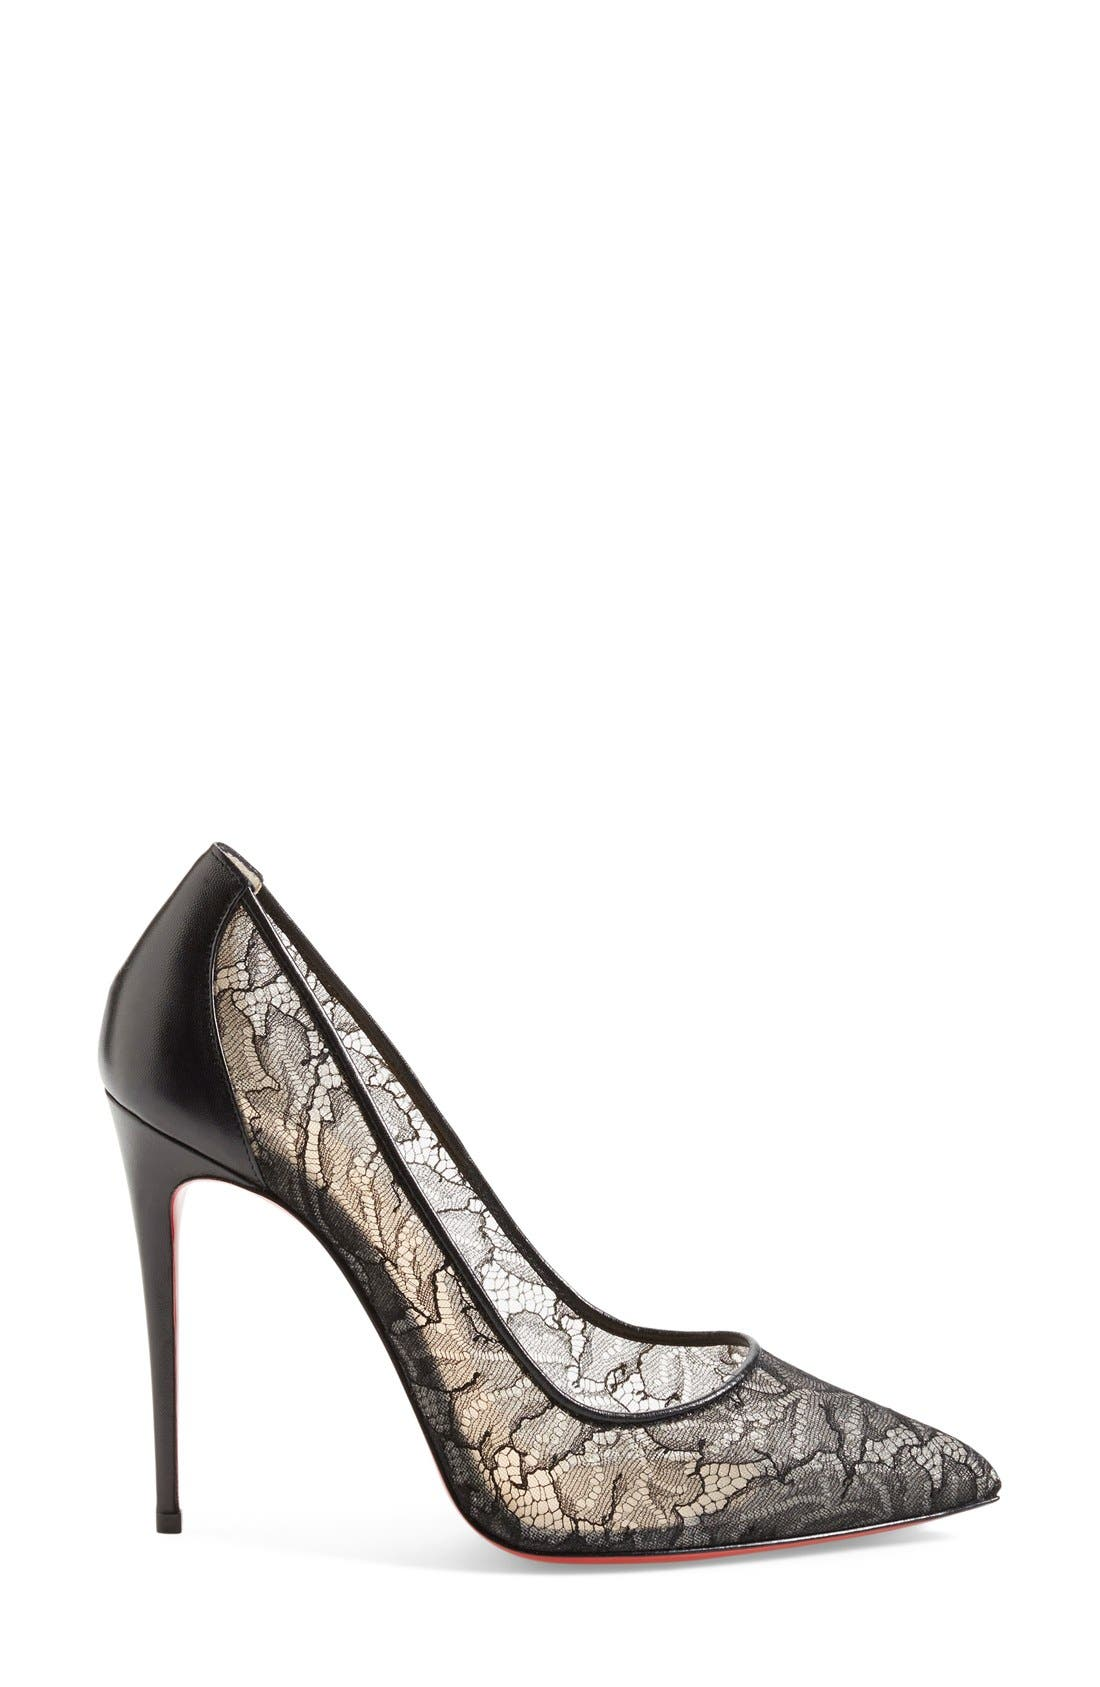 'Follies' Lace Pointy Toe Pump,                             Alternate thumbnail 2, color,                             001